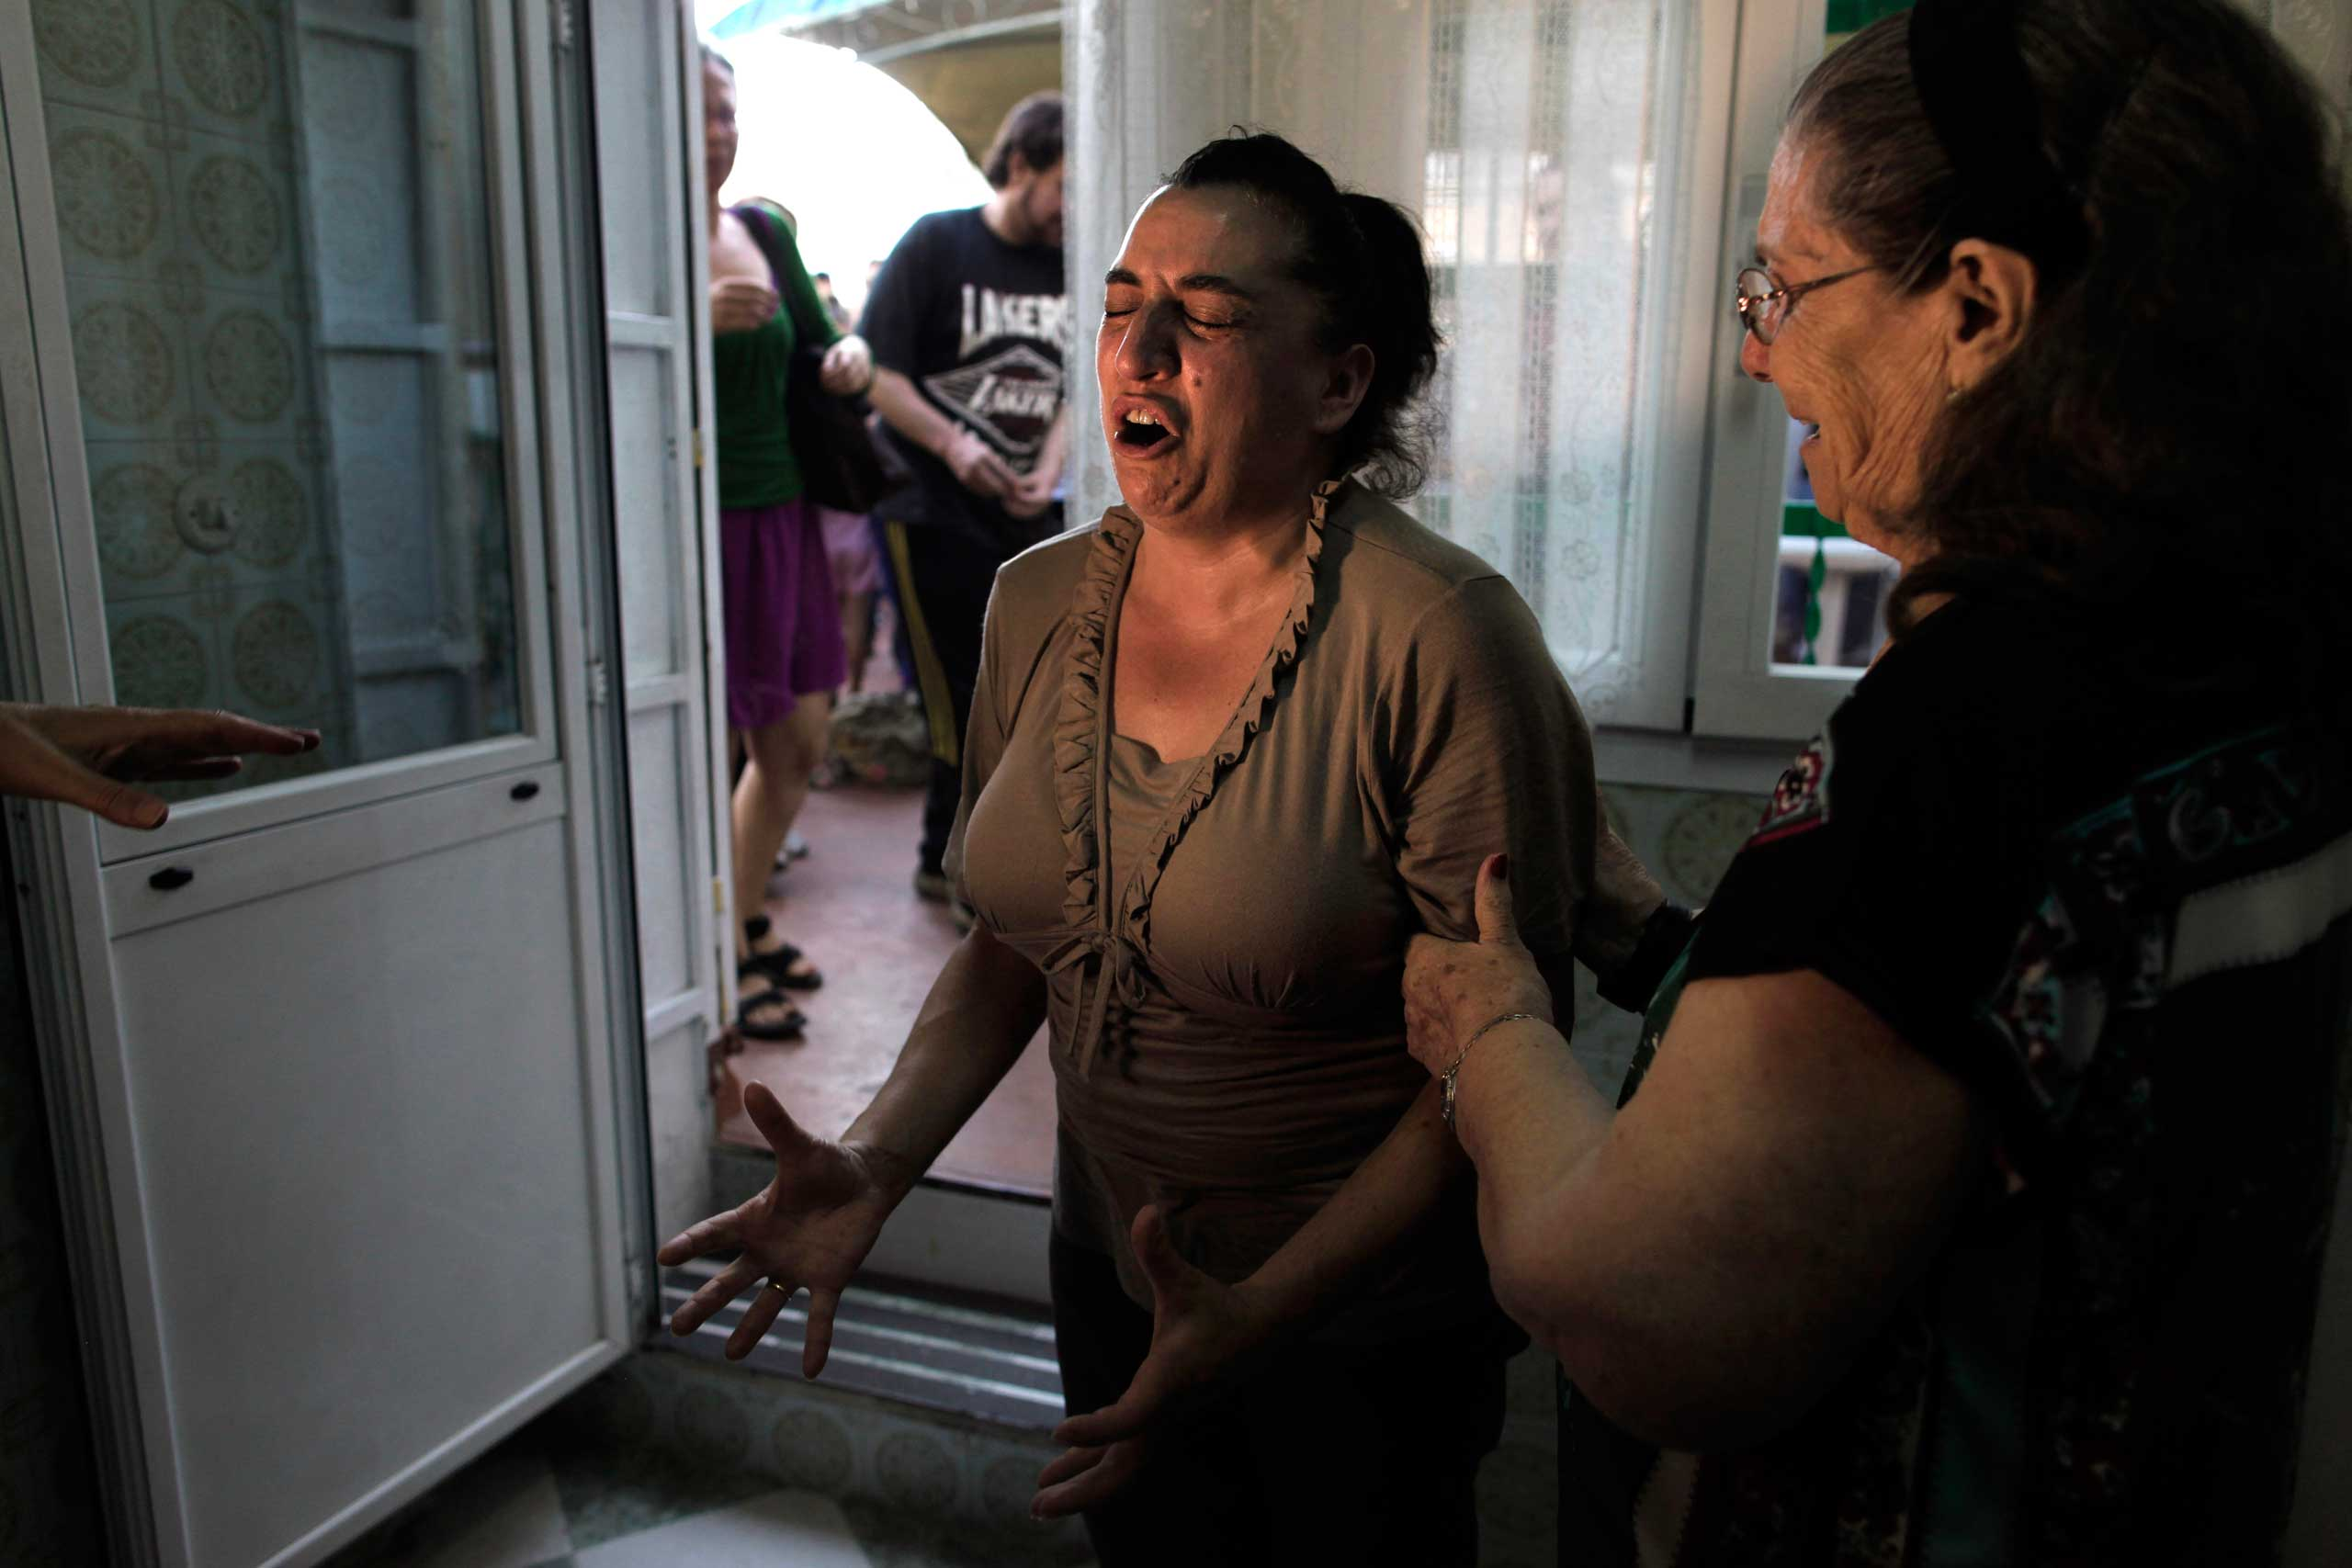 Luisa Gracia Gonzalez, 44, cries as her family's eviction and the demolition of her house by a forced expropriation was postponed in Madrid.  Aug. 2013.